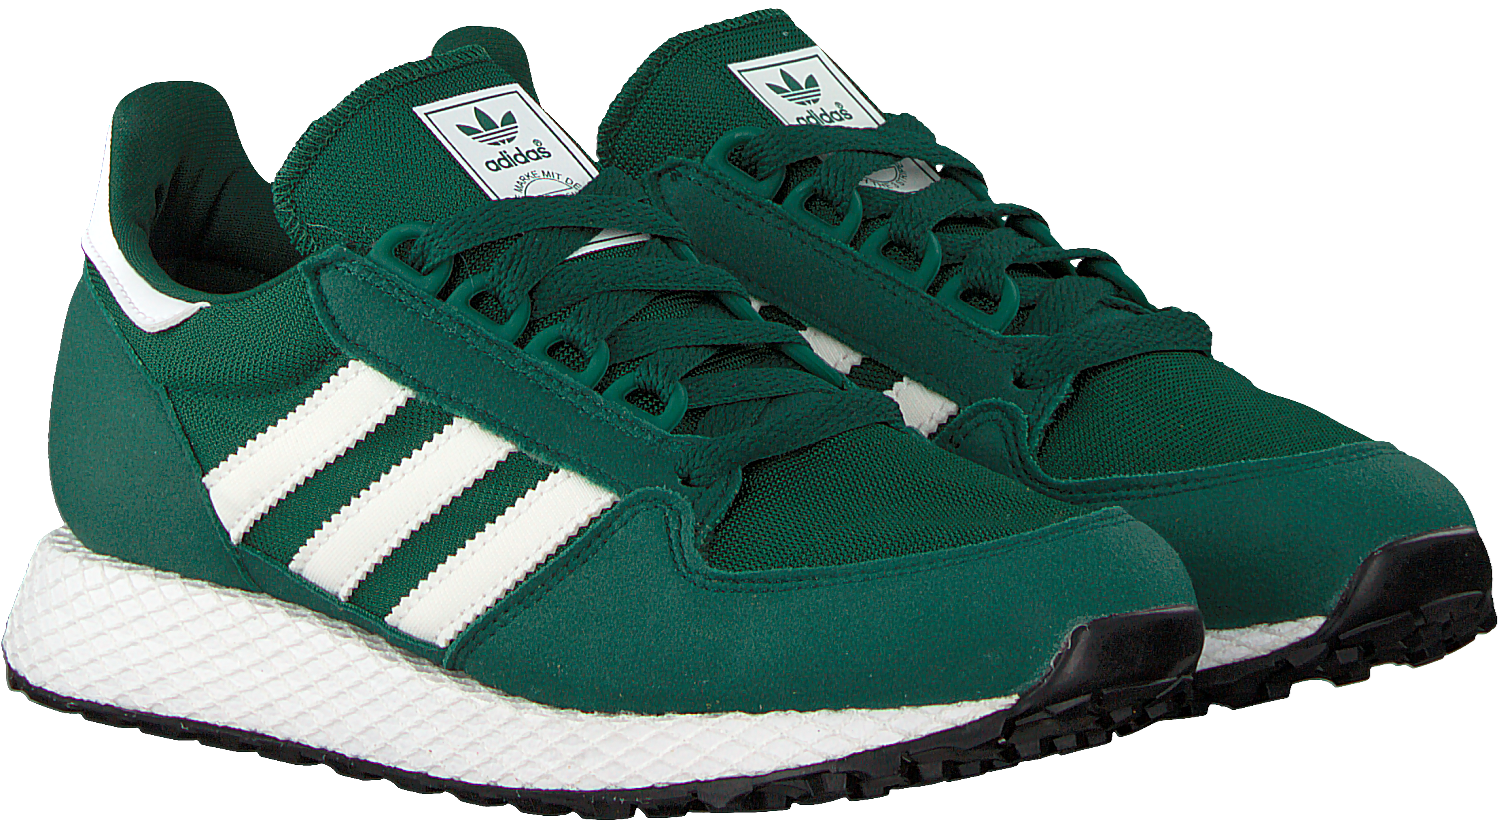 Omoda Forest Grove J be Adidas Sneakers Groene m80wNnv